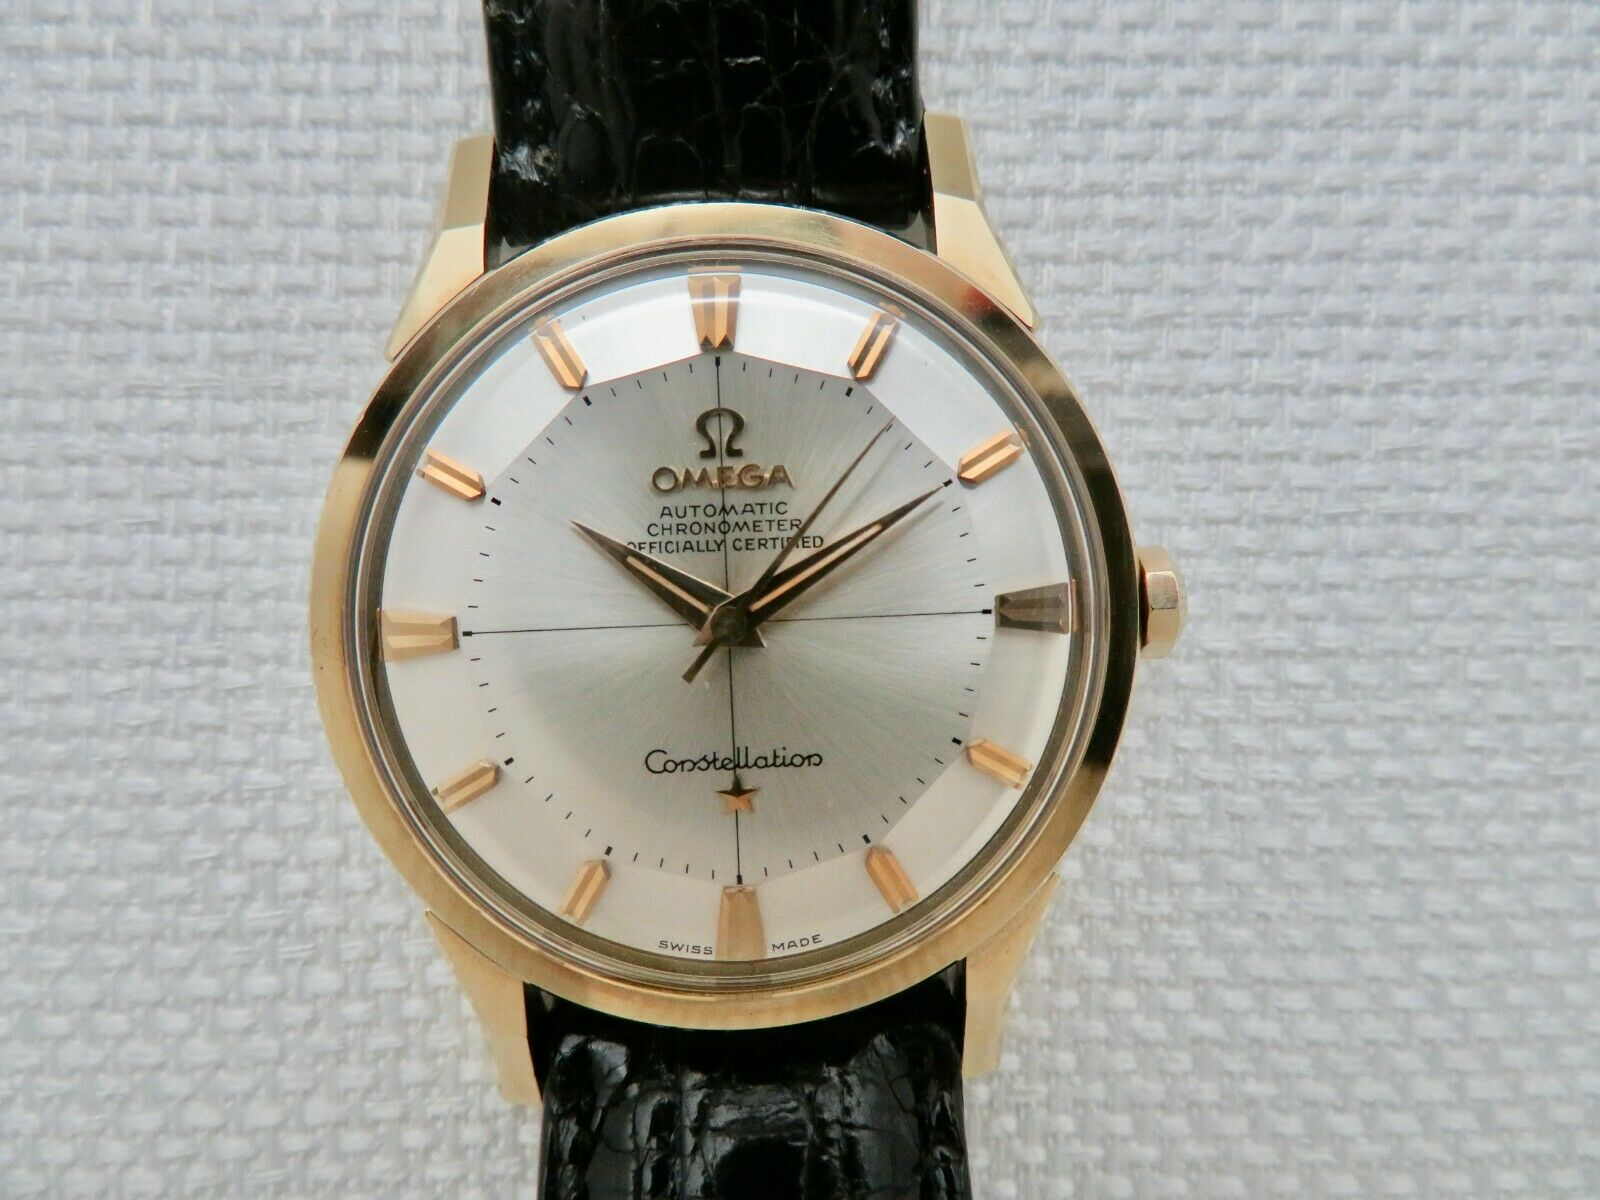 Recommended Vintage Omega Watches Only On Ebay Not For Inquiries Page 216 Omega Forums